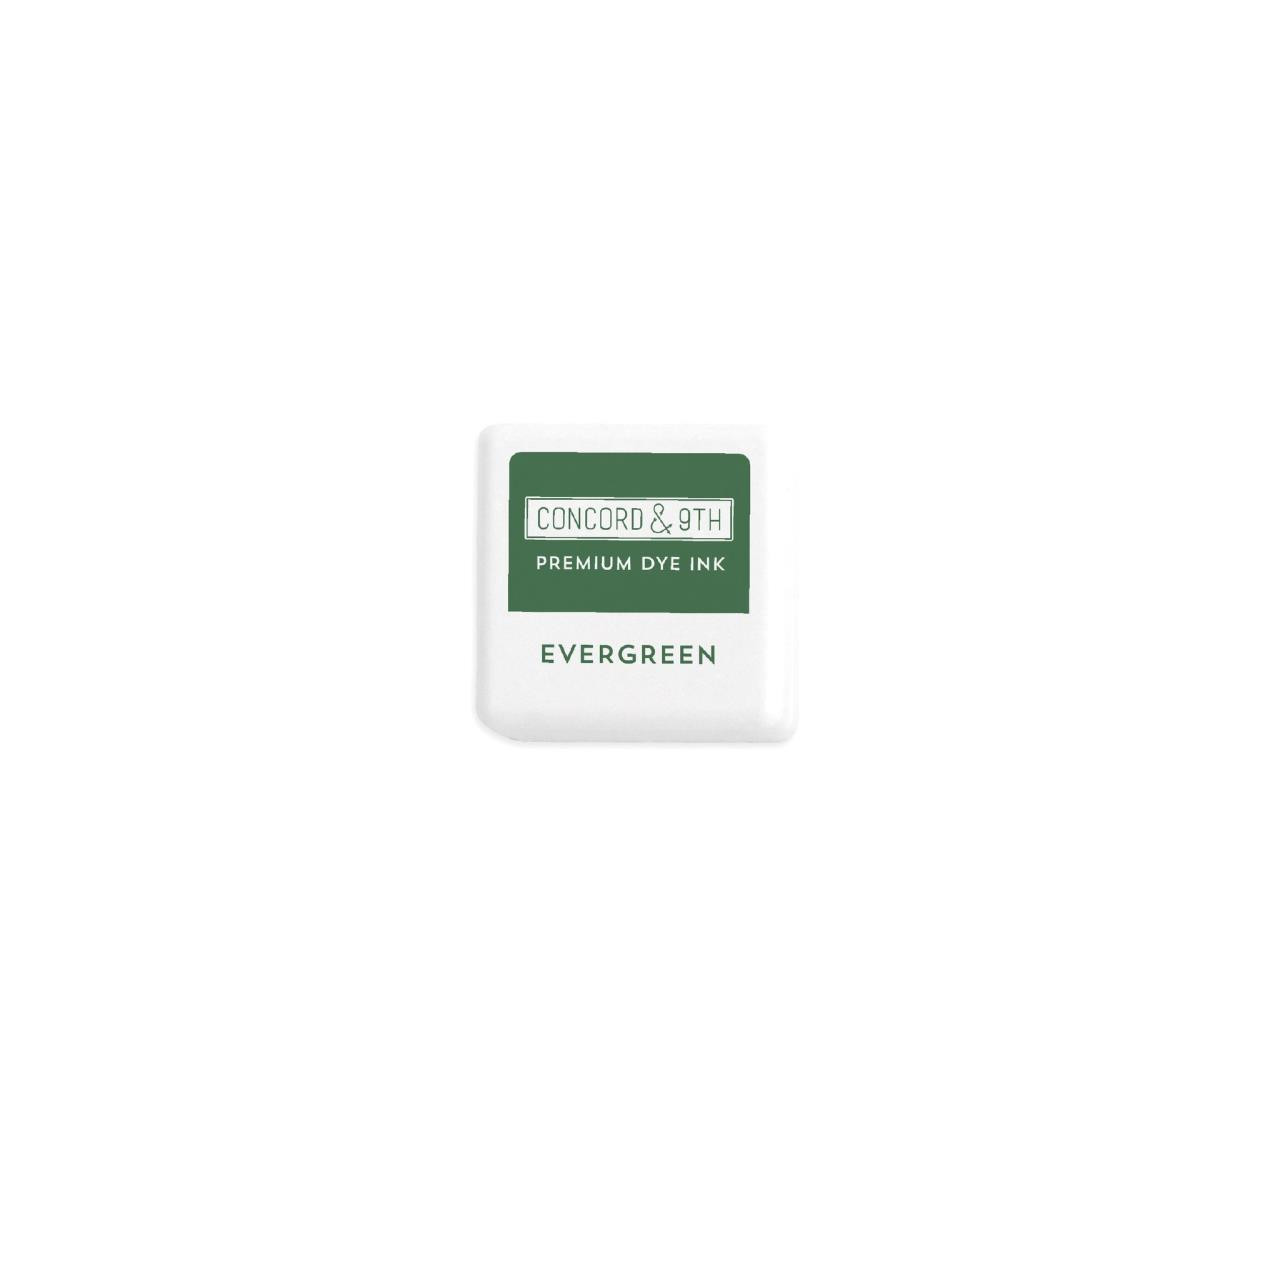 Evergreen, Concord & 9th Premium Dye Ink Cubes - 090222402225